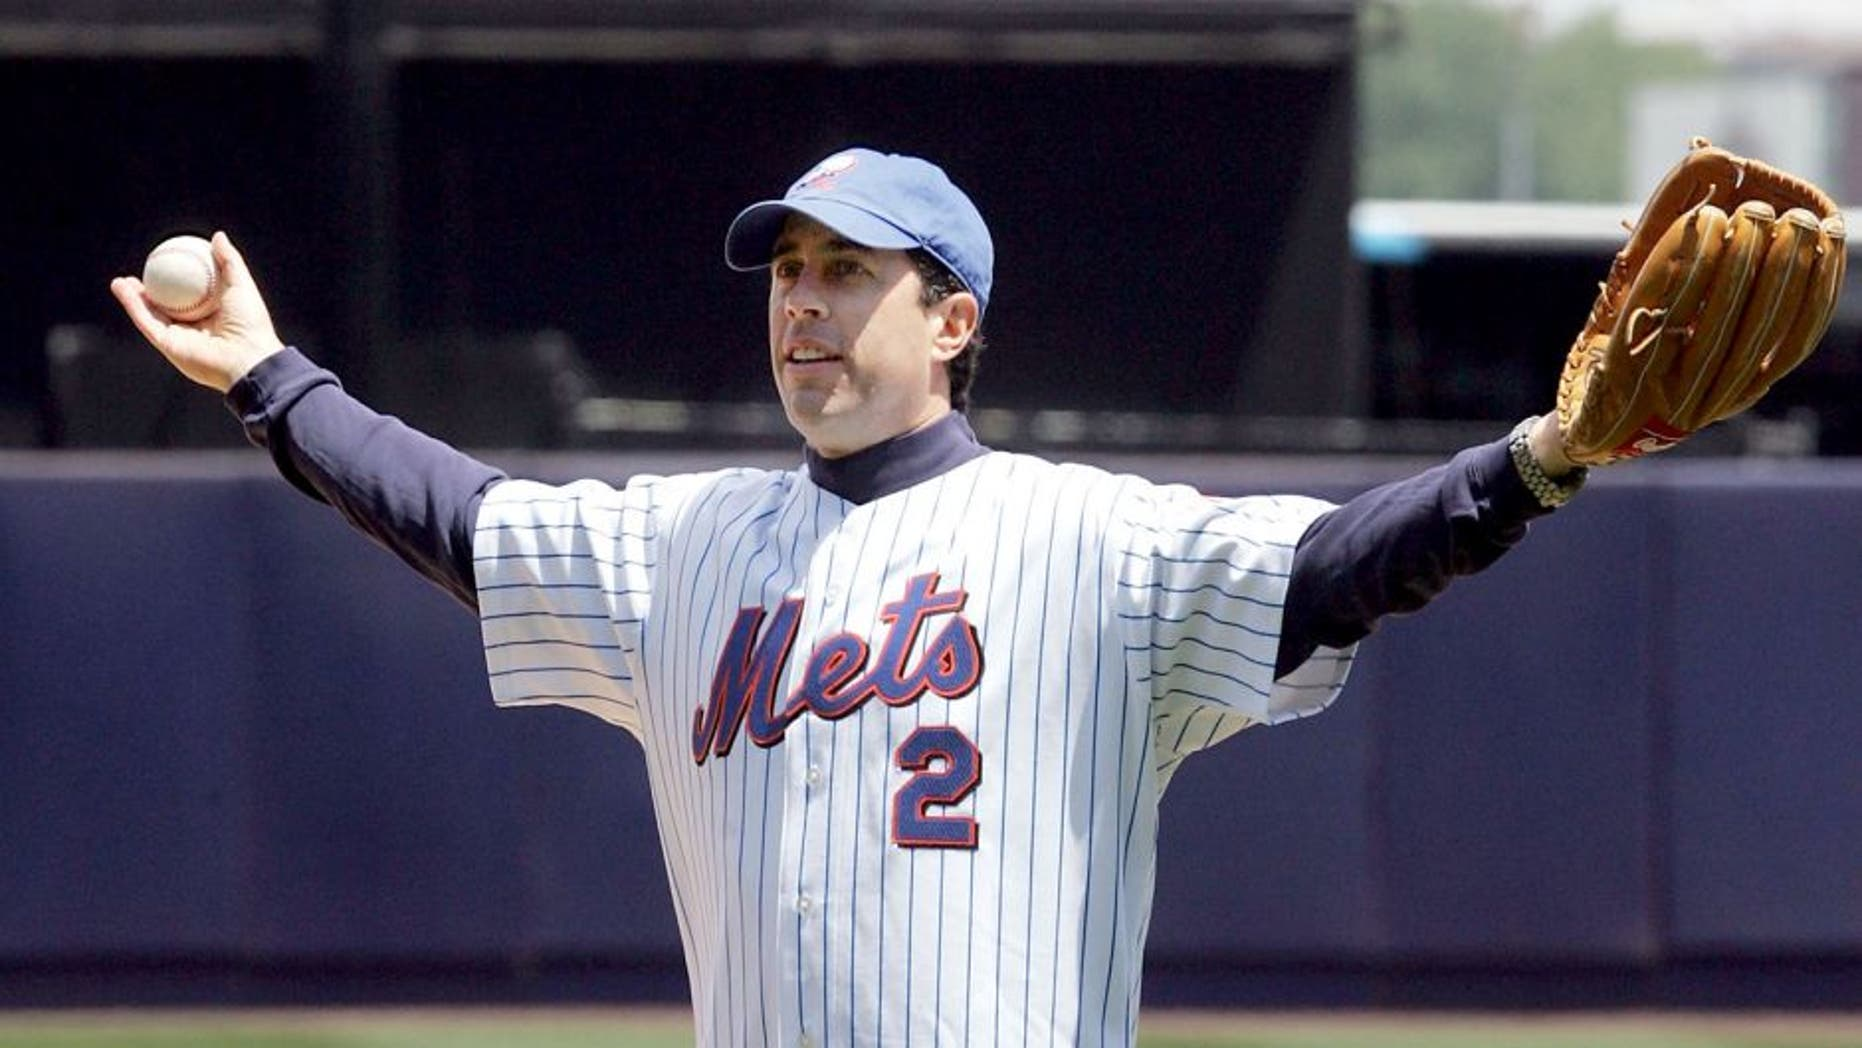 FLUSHING, NY - MAY 22: Comedian Jerry Seinfeld is introduced before throwing out the first pitch of the New York Mets vs New York Yankees game at Shea Stadium on May 22, 2005 in Flushing, New York. The Yankees defeated the Mets 5-3. (Photo by Jim McIsaac/Getty Images)